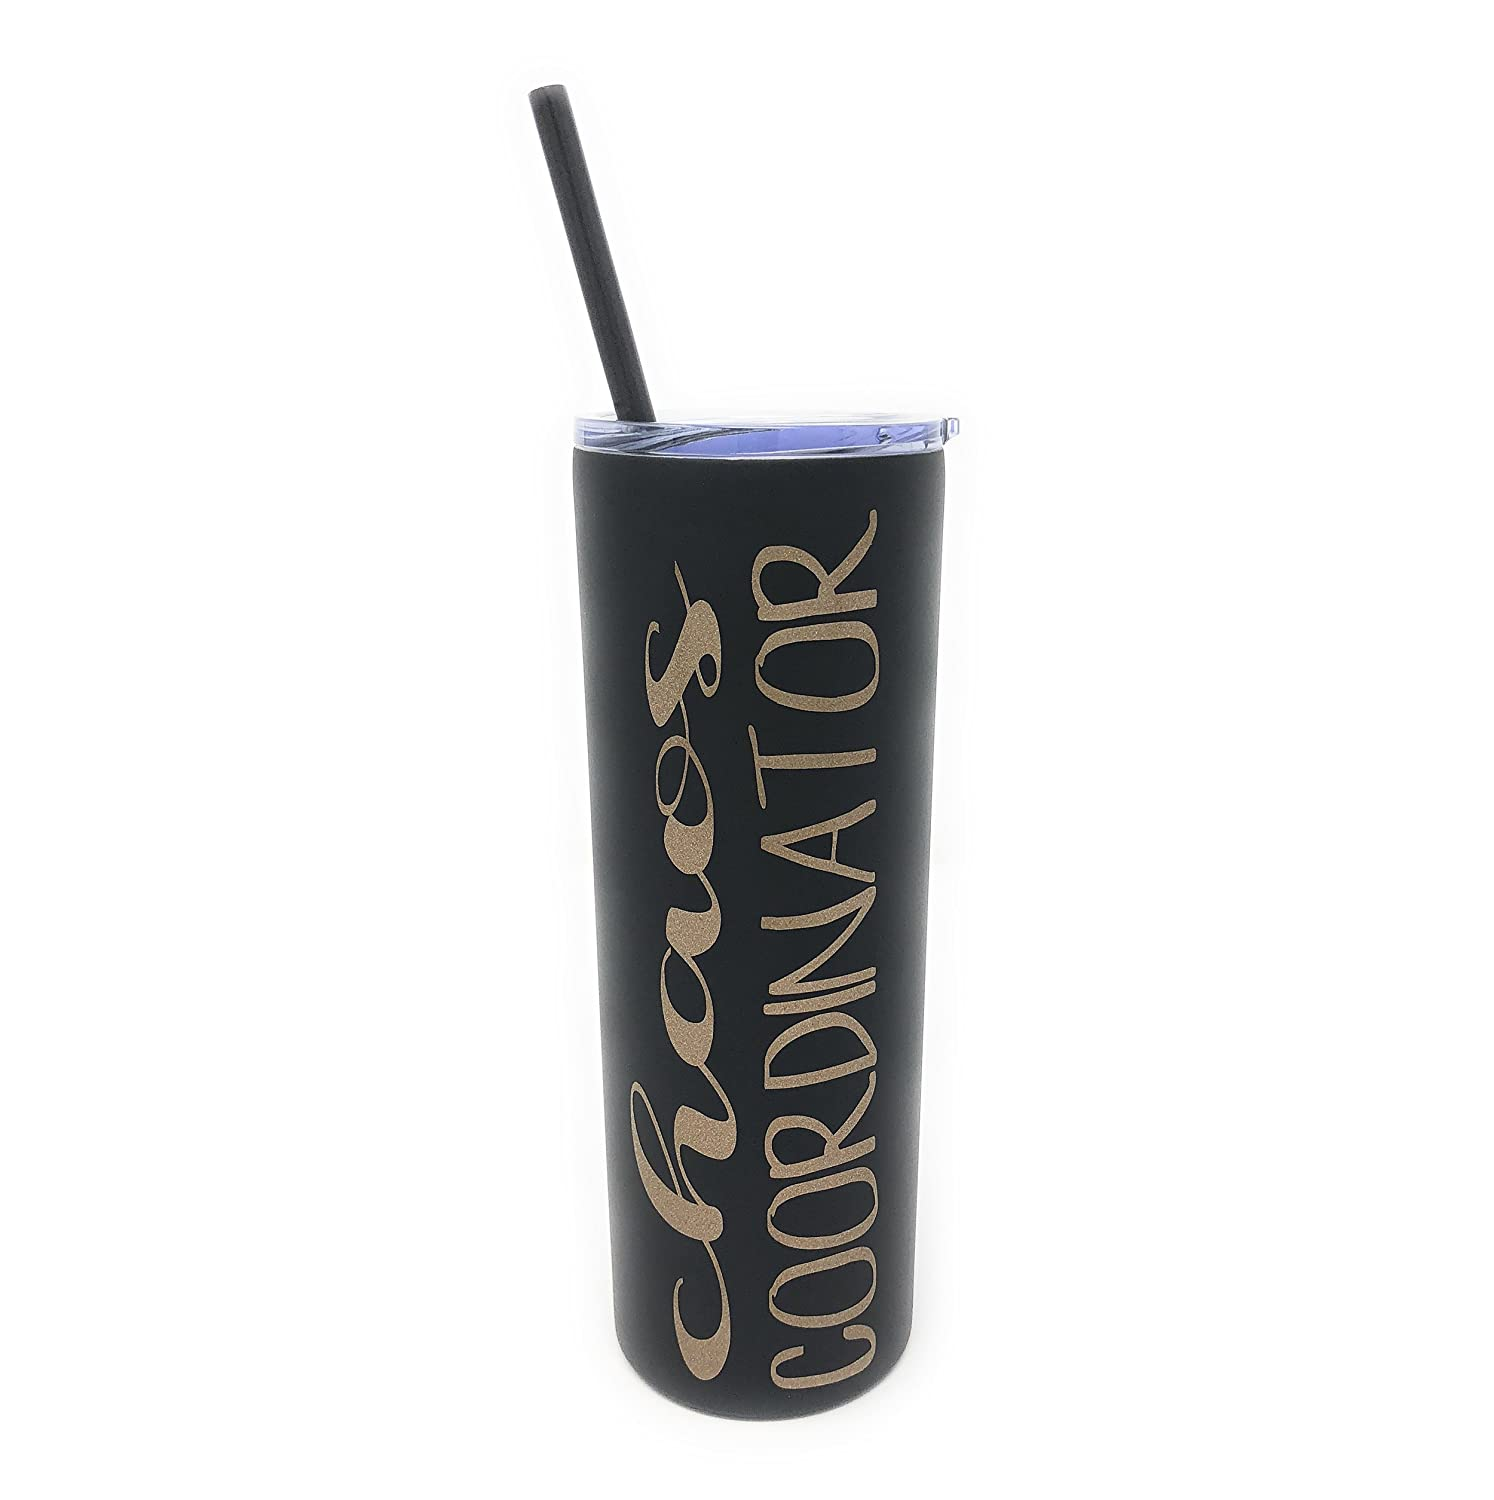 Chaos Coordinator in Gold Glitter Vinyl on a 20oz Black Stainless Steel Skinny Tumbler